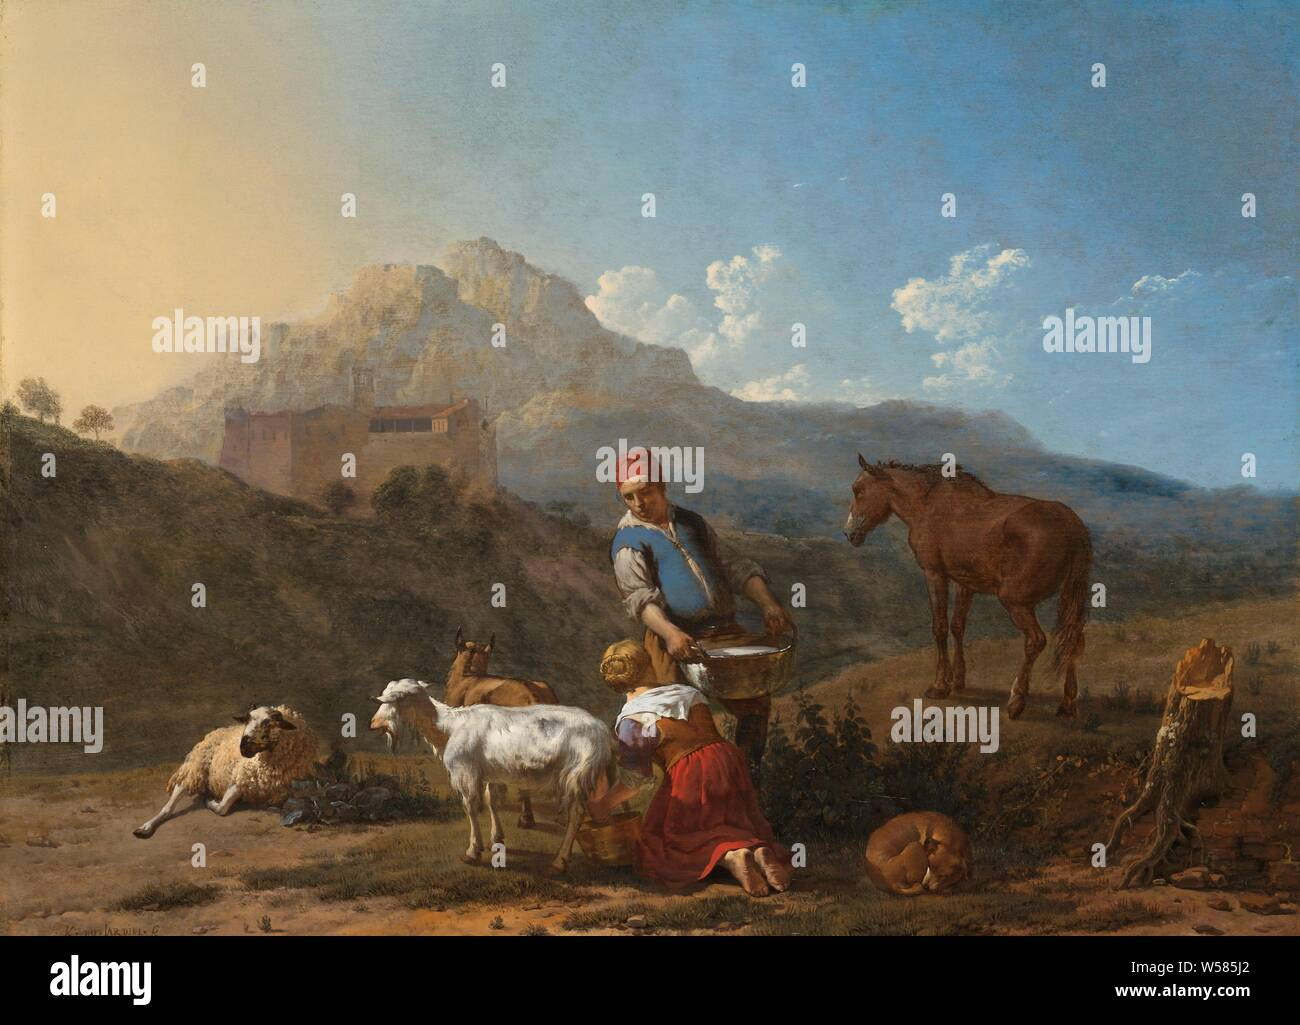 Italian Landscape With A Girl Milking A Goat Italian Landscape With A Girl Milking A Goat Italian Landscape With A Goat Milker Next To Her A Farmer Carries A Tub Filled With